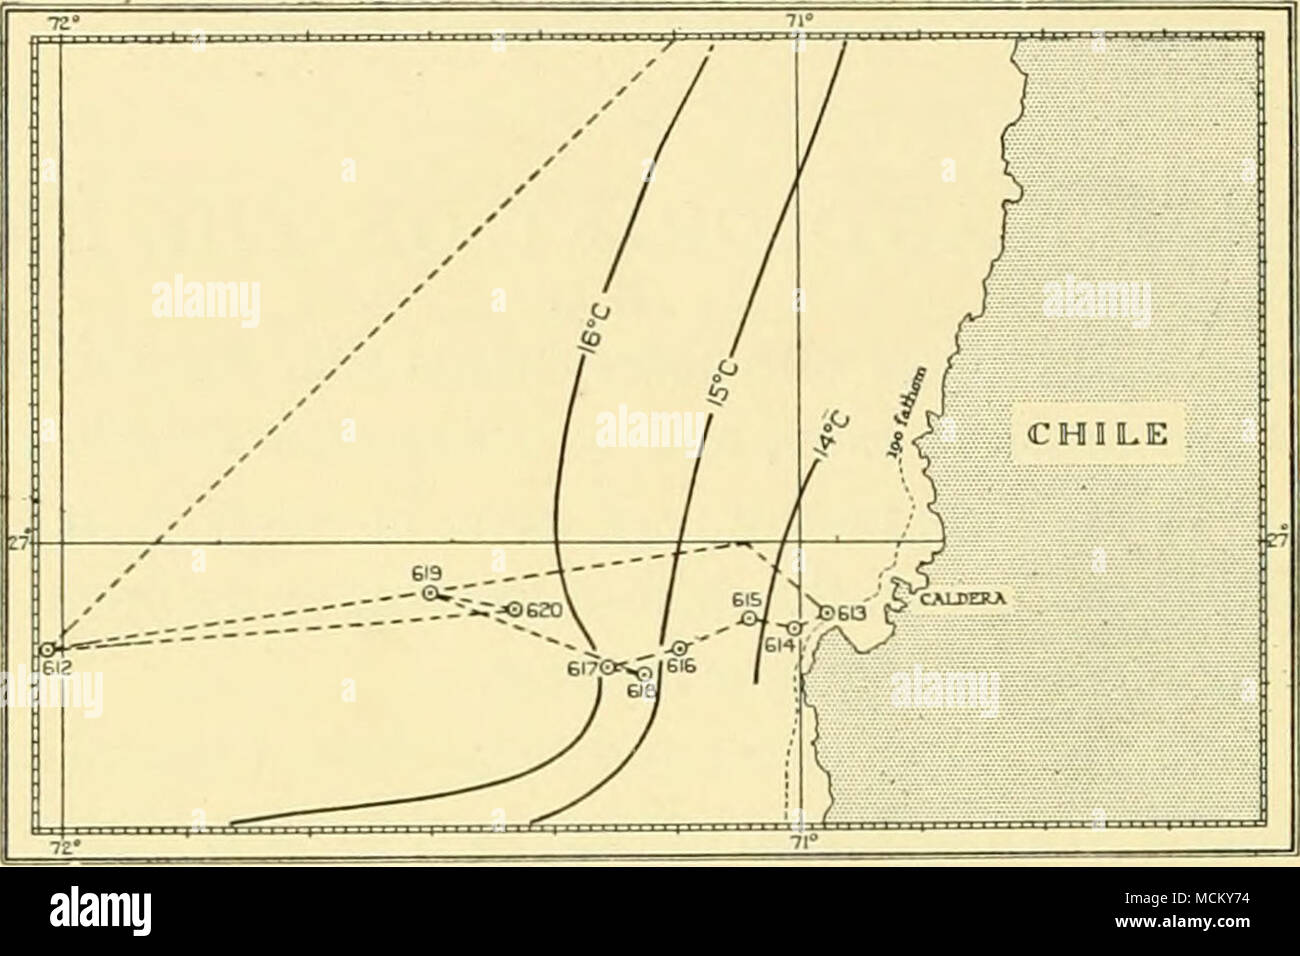 . Fig. 5- Caldera. Track of R.R.S.'William Scoresby', June 4-6. Courses set east and west, except on the limb immediately before St. WS 613. St. WS 612 was revisited after completion of St. WS 620. In this and the following charts, the track of the ship is shown as a thin broken line, and the surface isotherms as heavier continuous lines. .--^ I4°C- / -nsl 73aJ ^(A 1 605 604 603 602  I Fig. 6. Pichidanque Bay. Track of the ship, May 28-30. After St. WS 602 course set 270°; after St. WS 607 course set 090°. - Stock Image